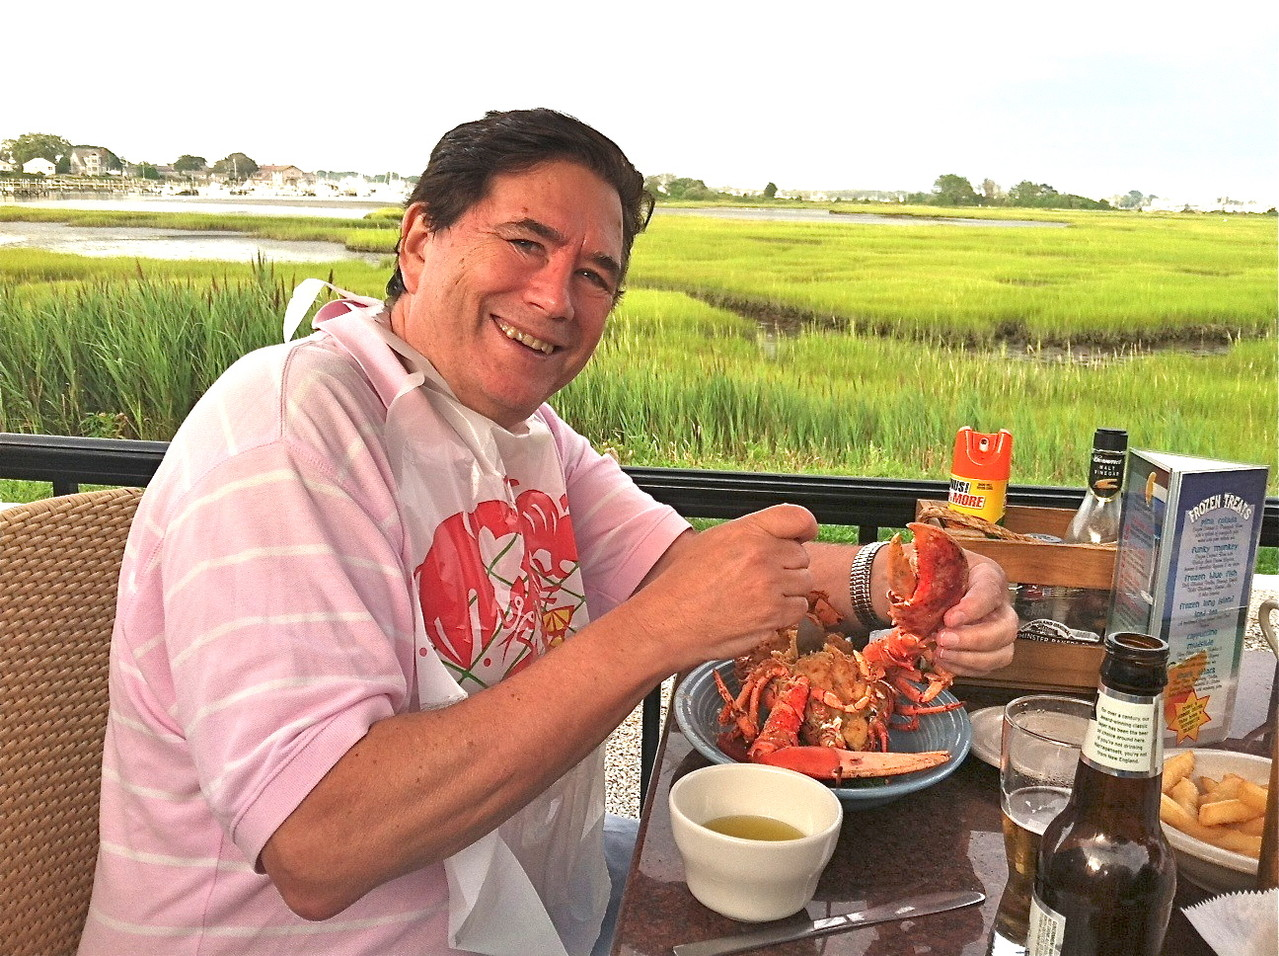 John loves lobster at Captain Jacks, Matunuck, RI